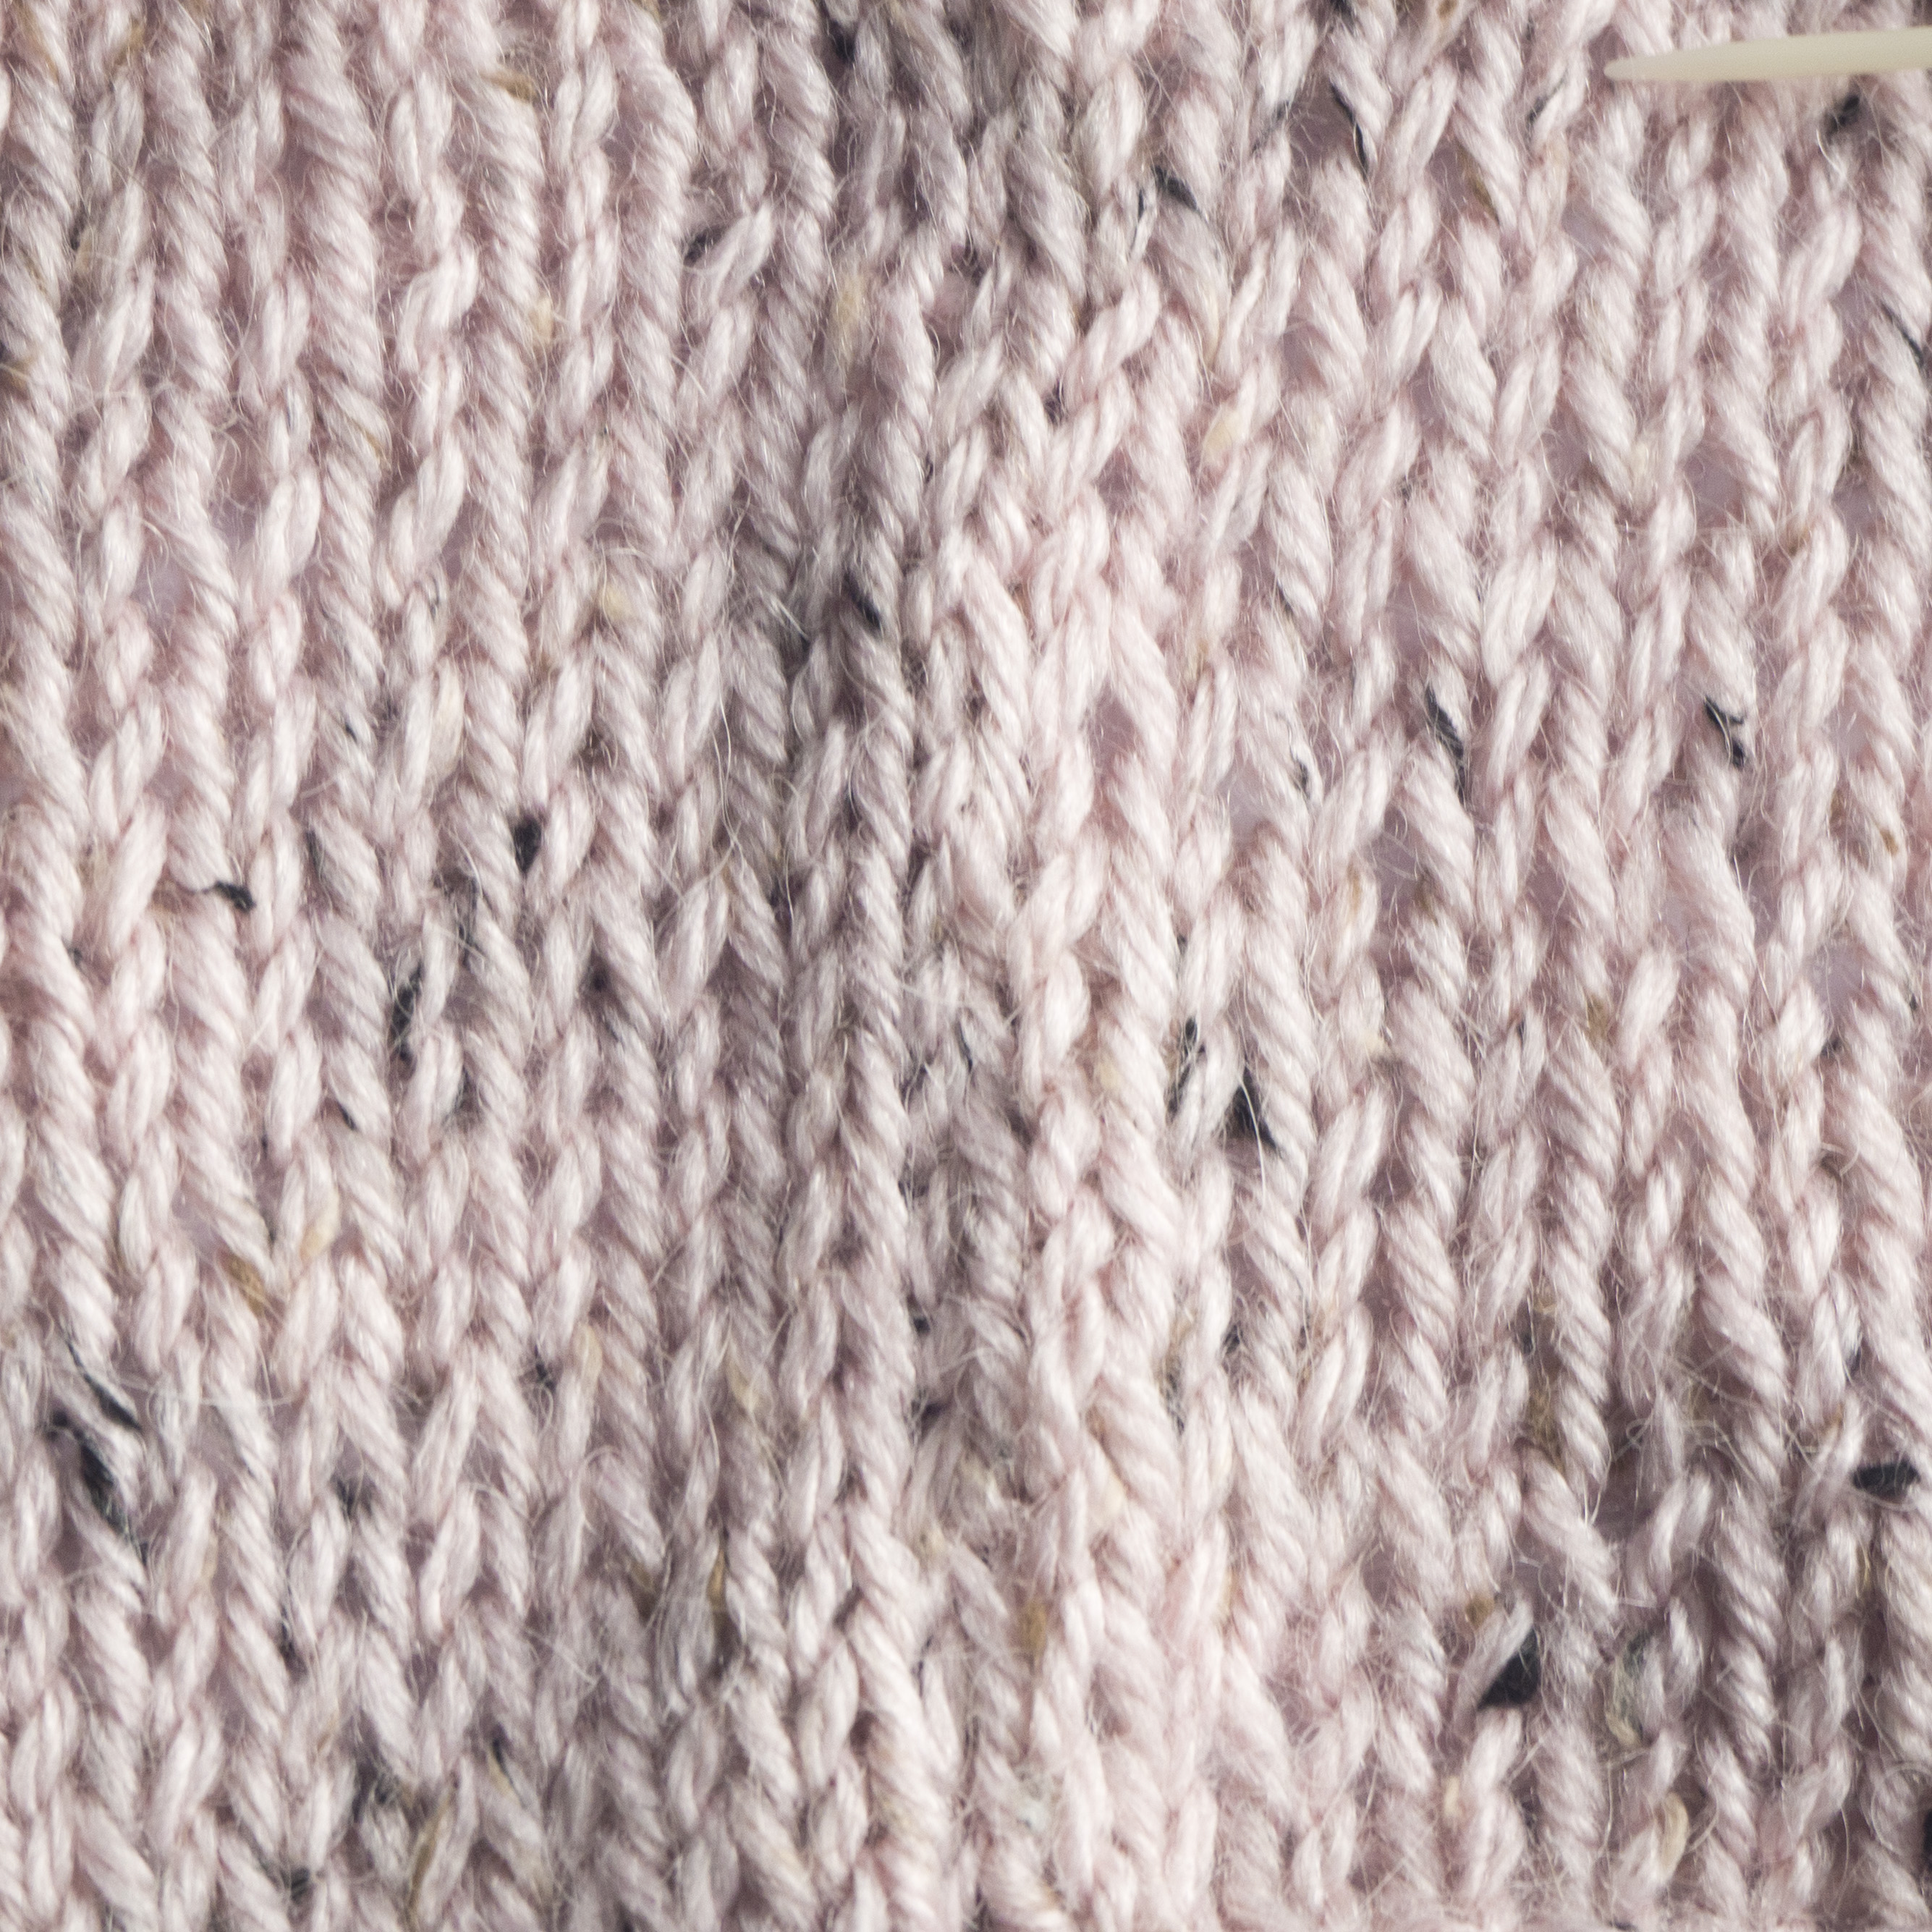 Knitting Tips Try Mattress Stitch For Neat Seams